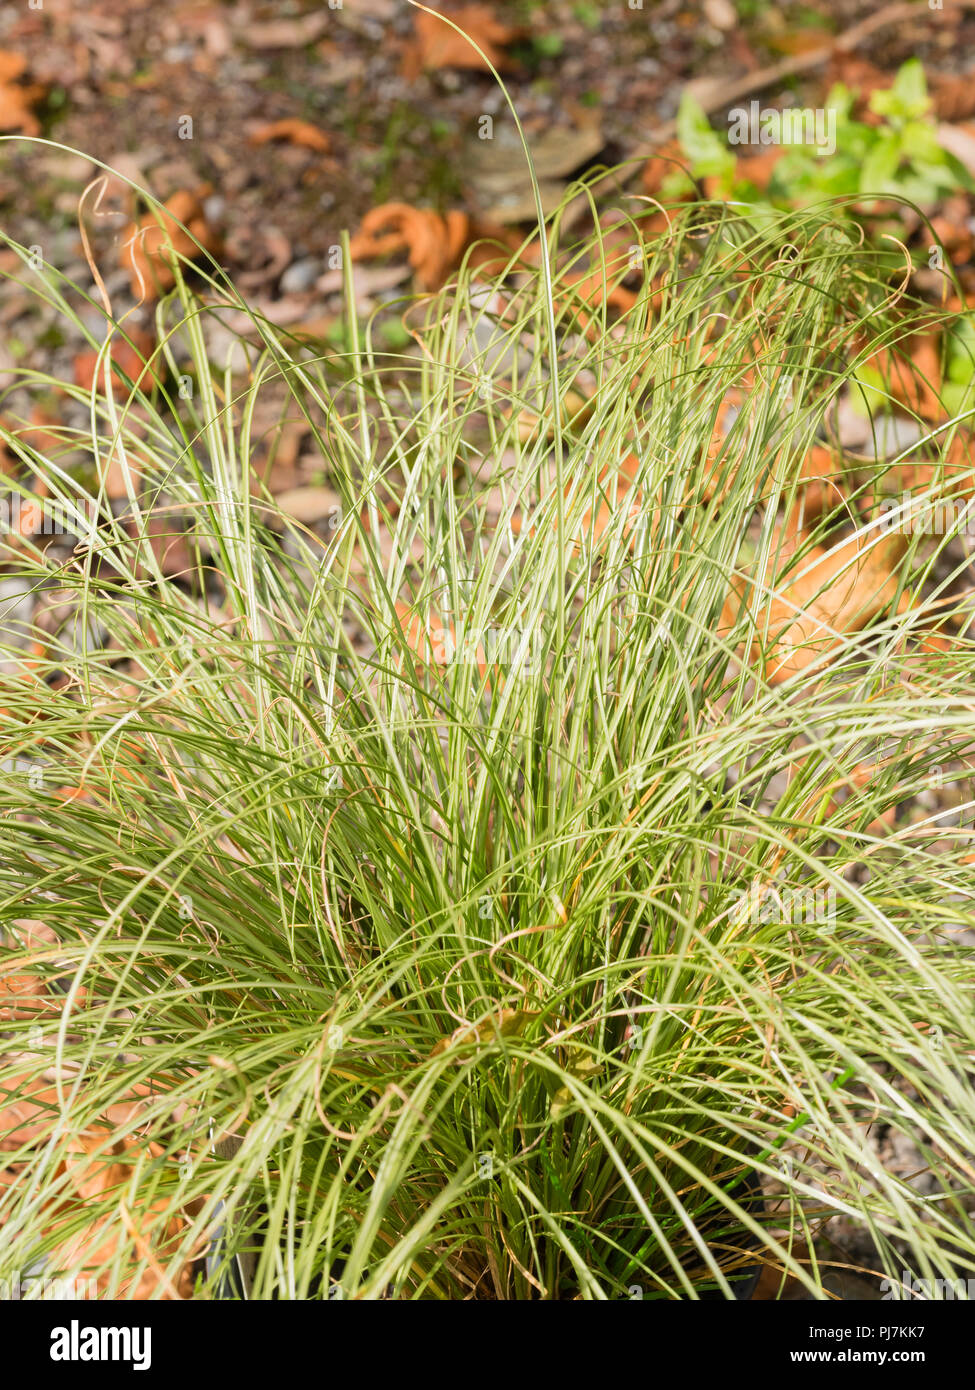 Mounding habit and silvery green, grass like foliage of the hardy sedge, Carex comans 'Frosted Curls' - Stock Image